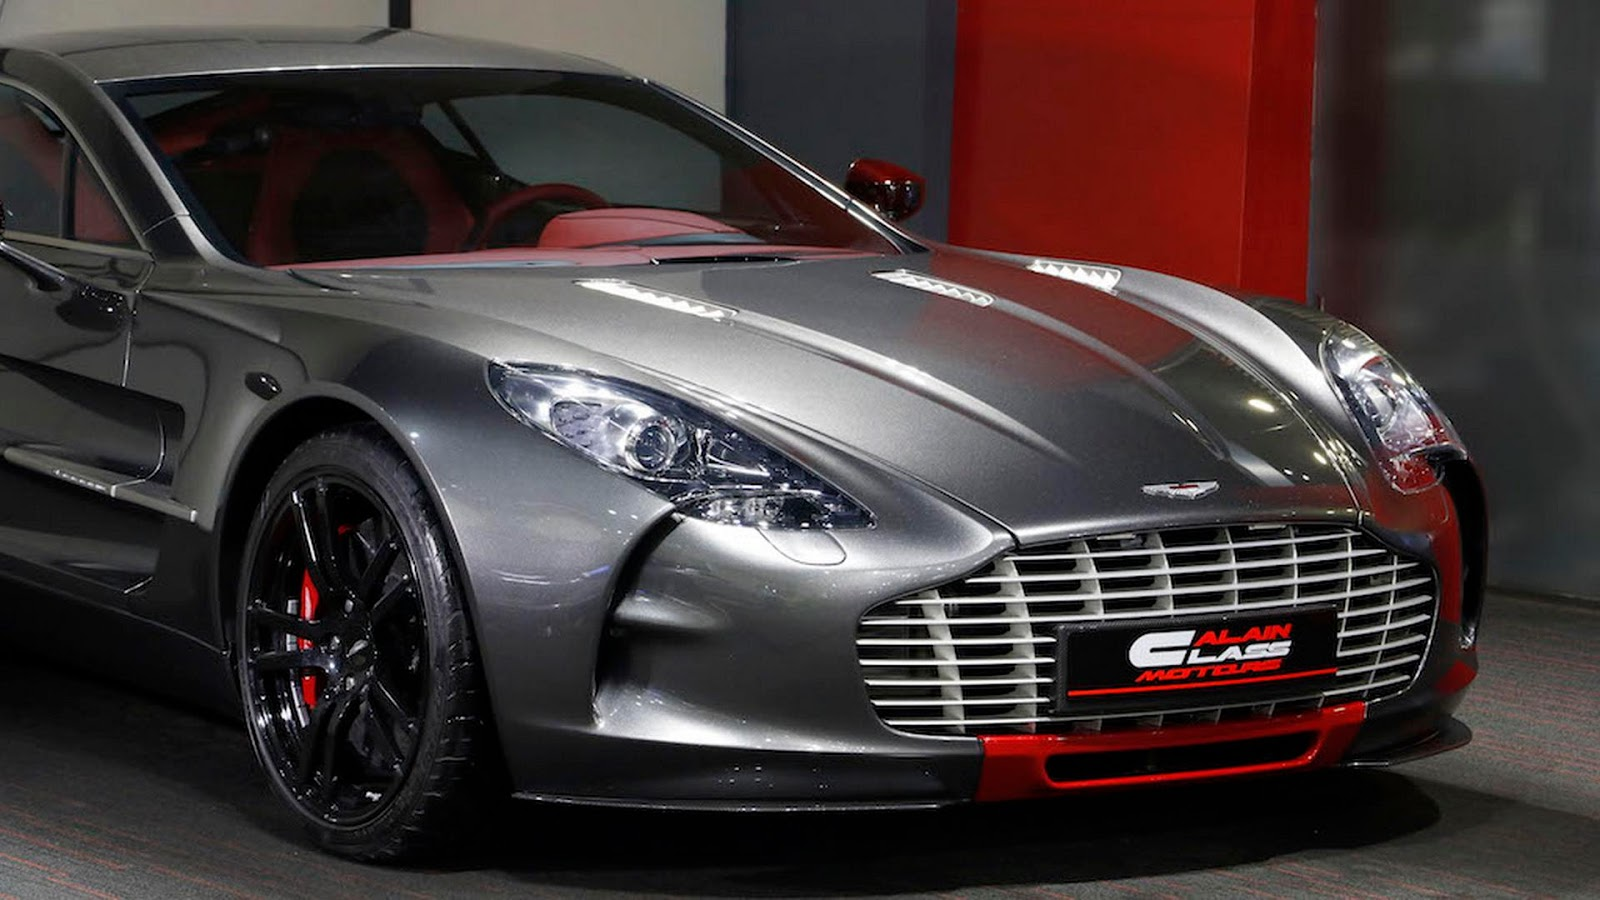 ultra rare aston martin one 77 q series for sale in dubai carscoops. Black Bedroom Furniture Sets. Home Design Ideas